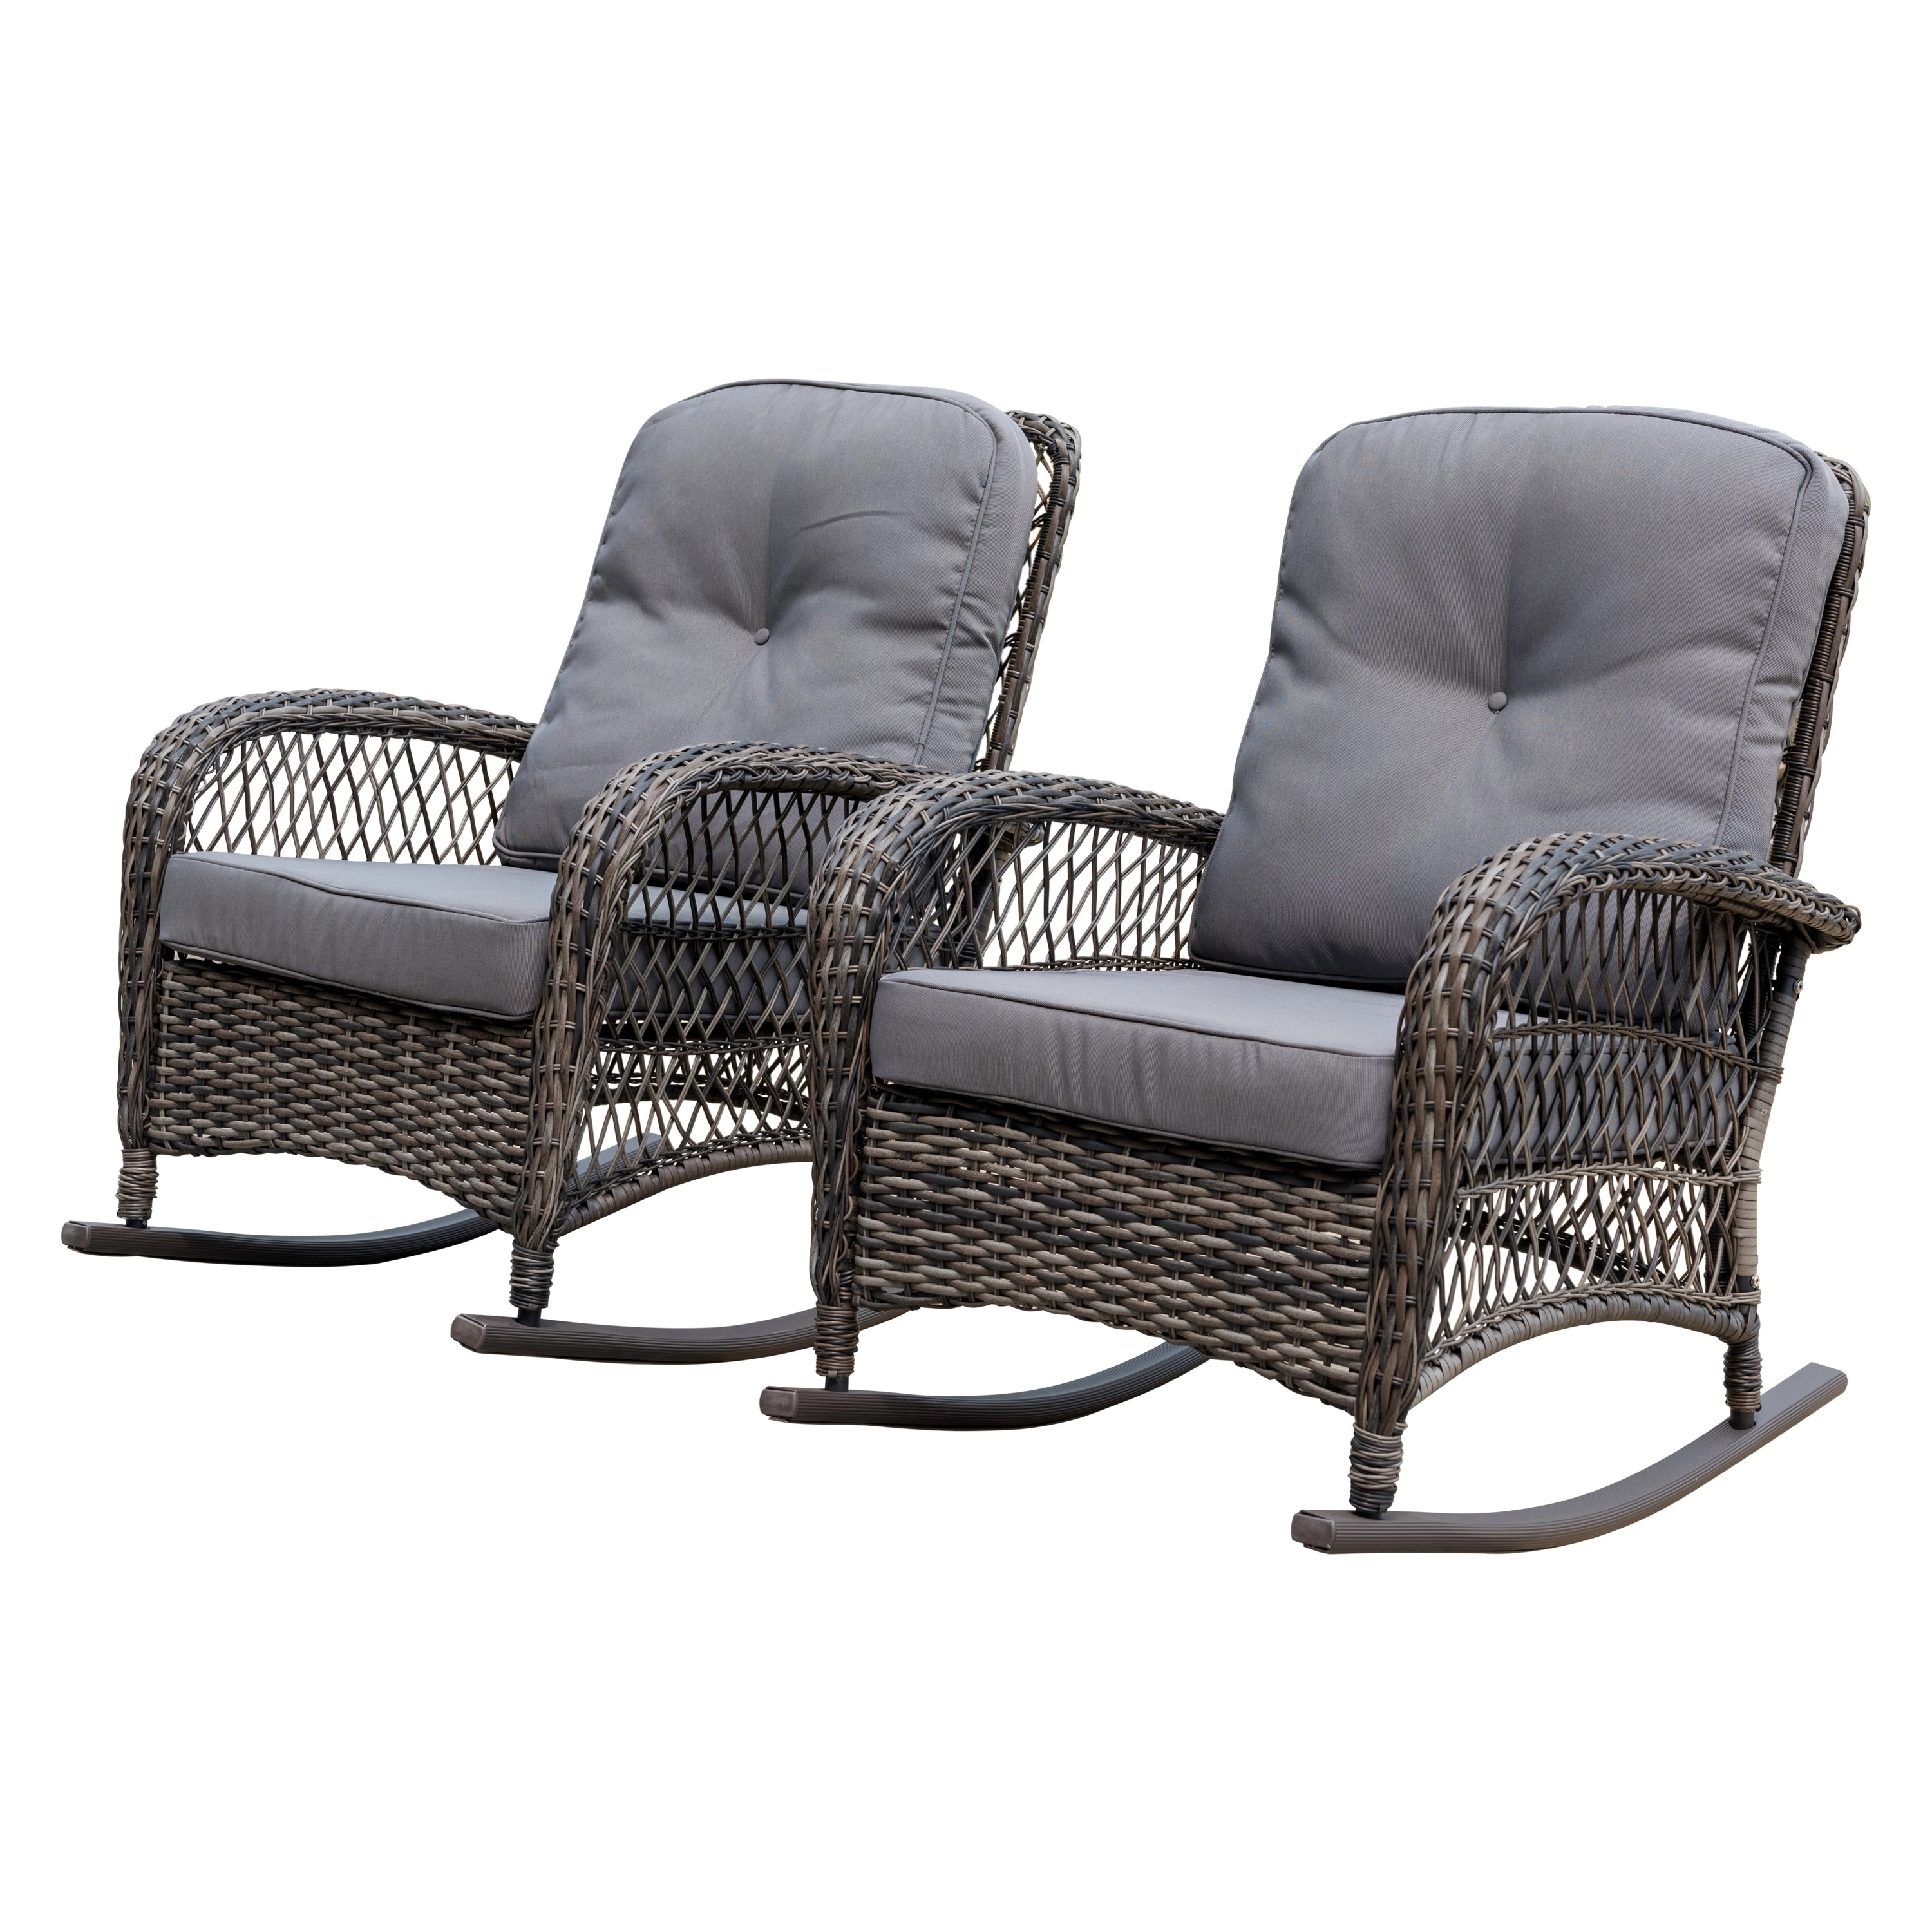 Shop Corvus Salerno Outdoor Wicker Rocking Chair With Cushions   Free  Shipping Today   Overstock.com   21481356